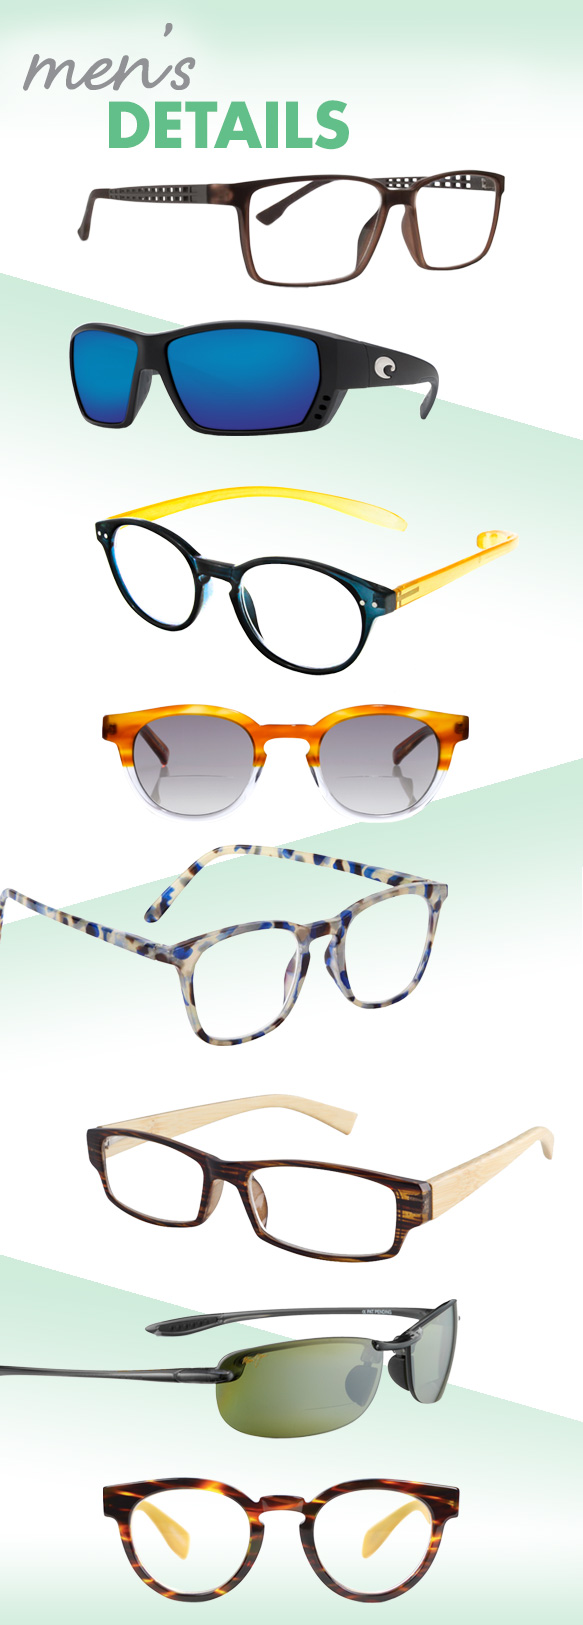 Cinzia (Uniform), Costa Sunglasses C-Mates (Tuna Alley), Desert Sunglass of Scottsdale (RG18379), eyebobs (Laid), I Heart Eyewear (Sawyer), ICU Eyewear (7248), Maui Jim (Makaha), Scojo New York (Fulton Street)